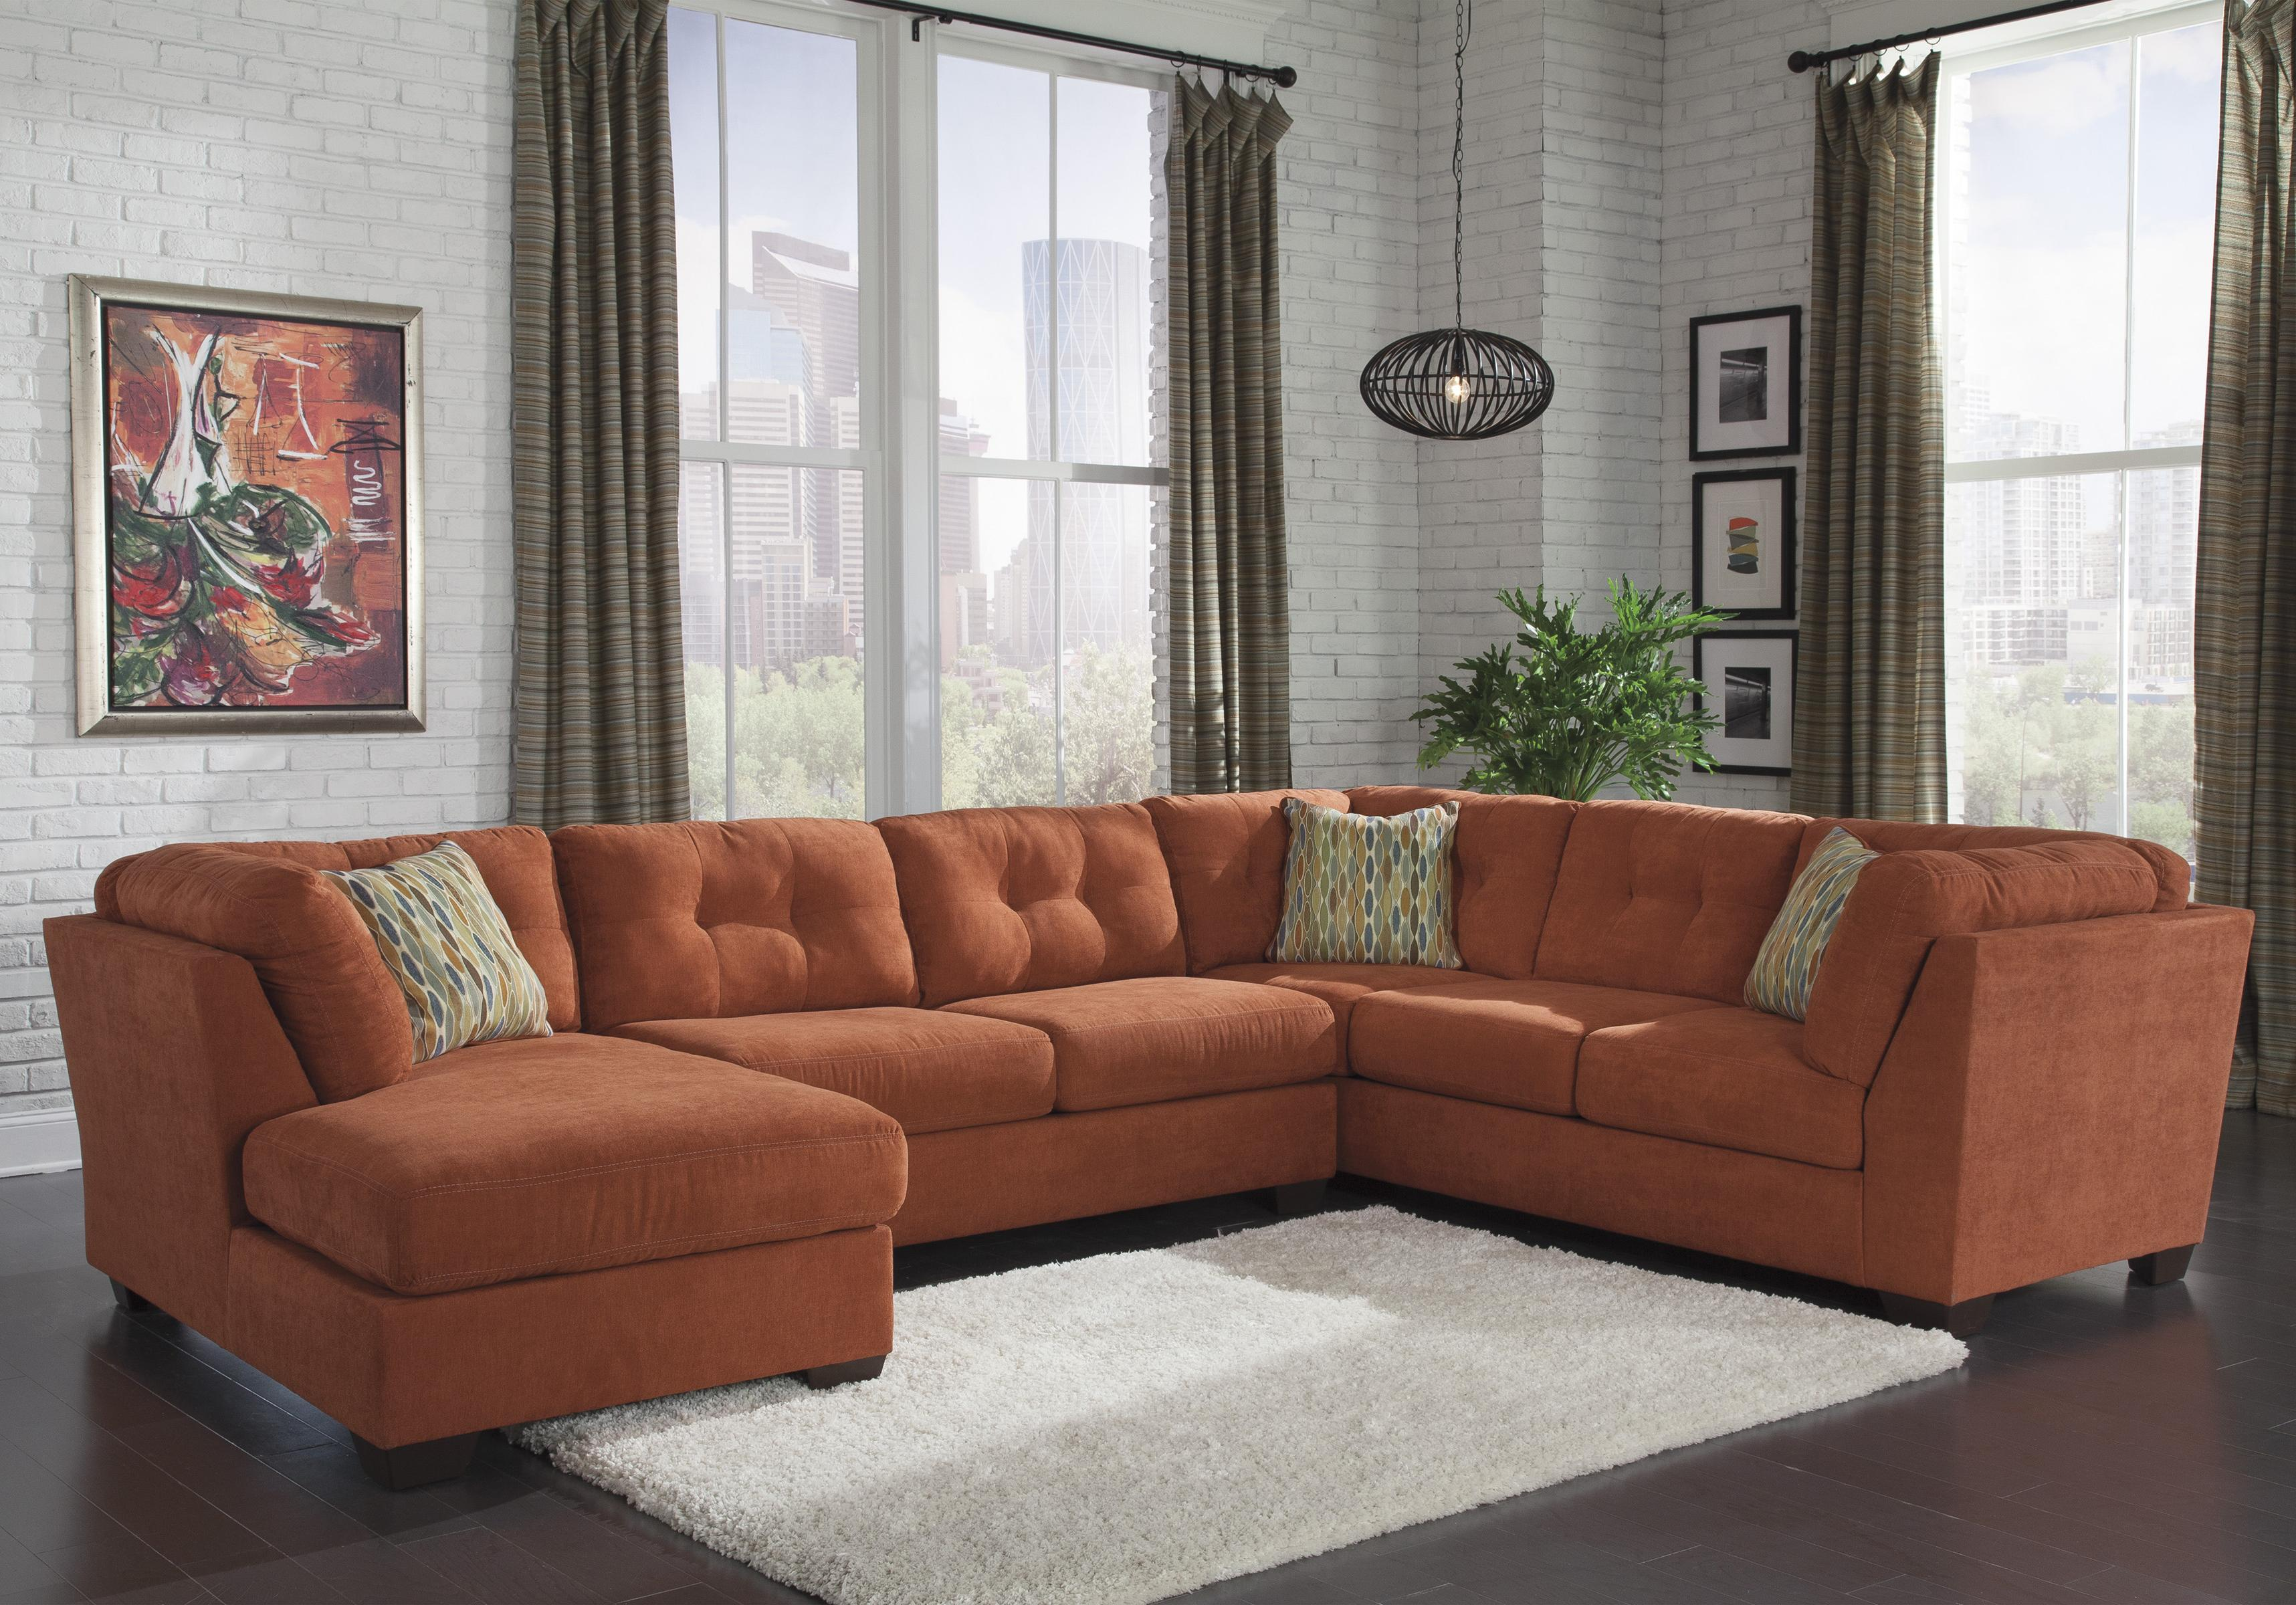 Benchcraft Delta City - Rust 3-Piece Sectional w/ Sleeper & Left Chaise - Item Number: 1970116+71+38